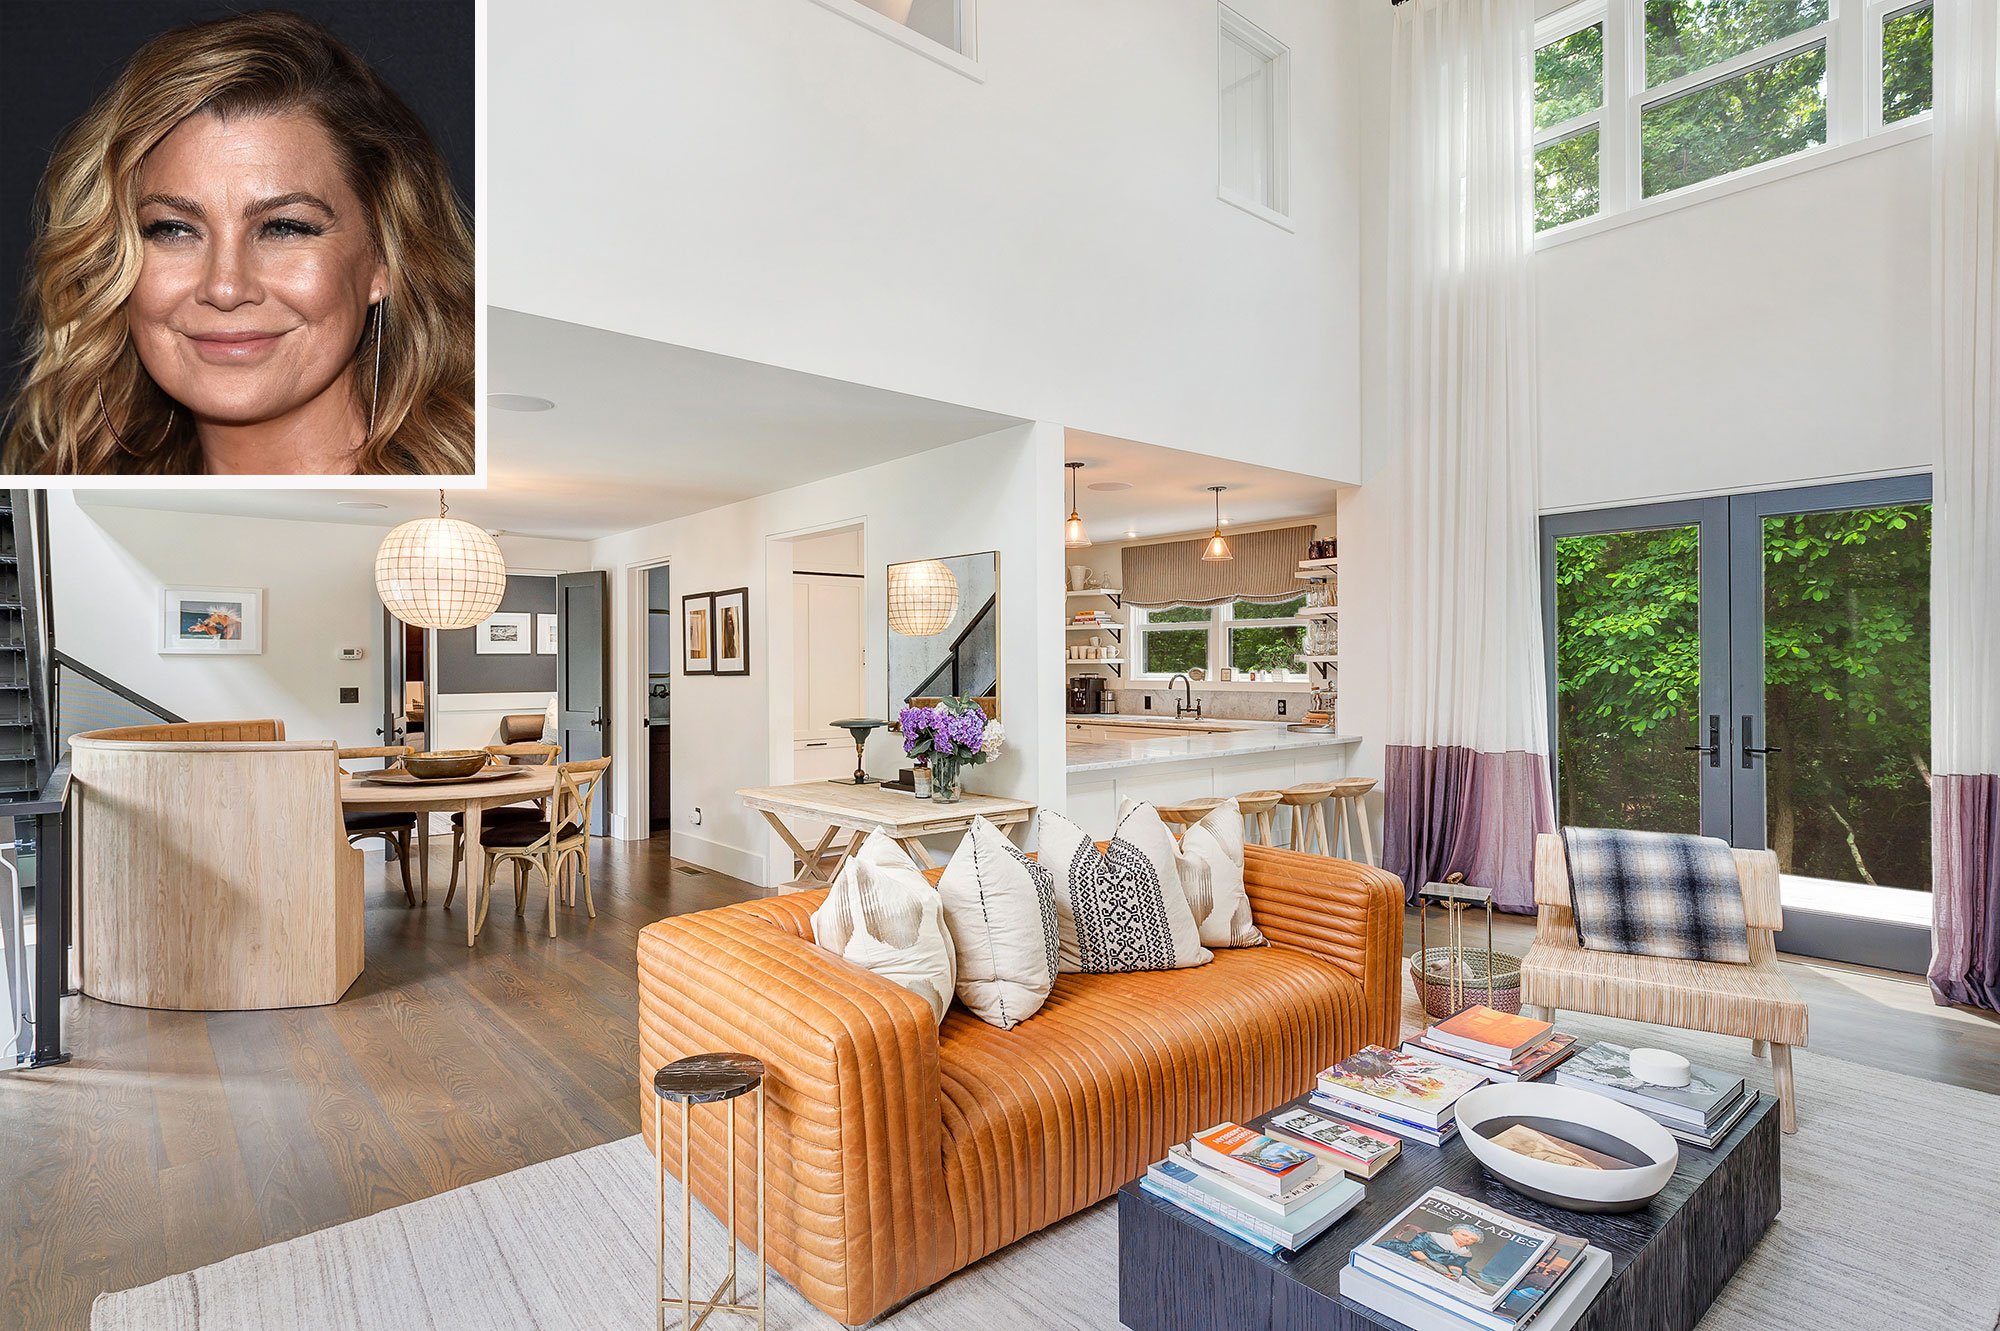 Ellen Pompeo Lists Just-Completed 'Modern Barn' in the Hamptons for $3.8 Million